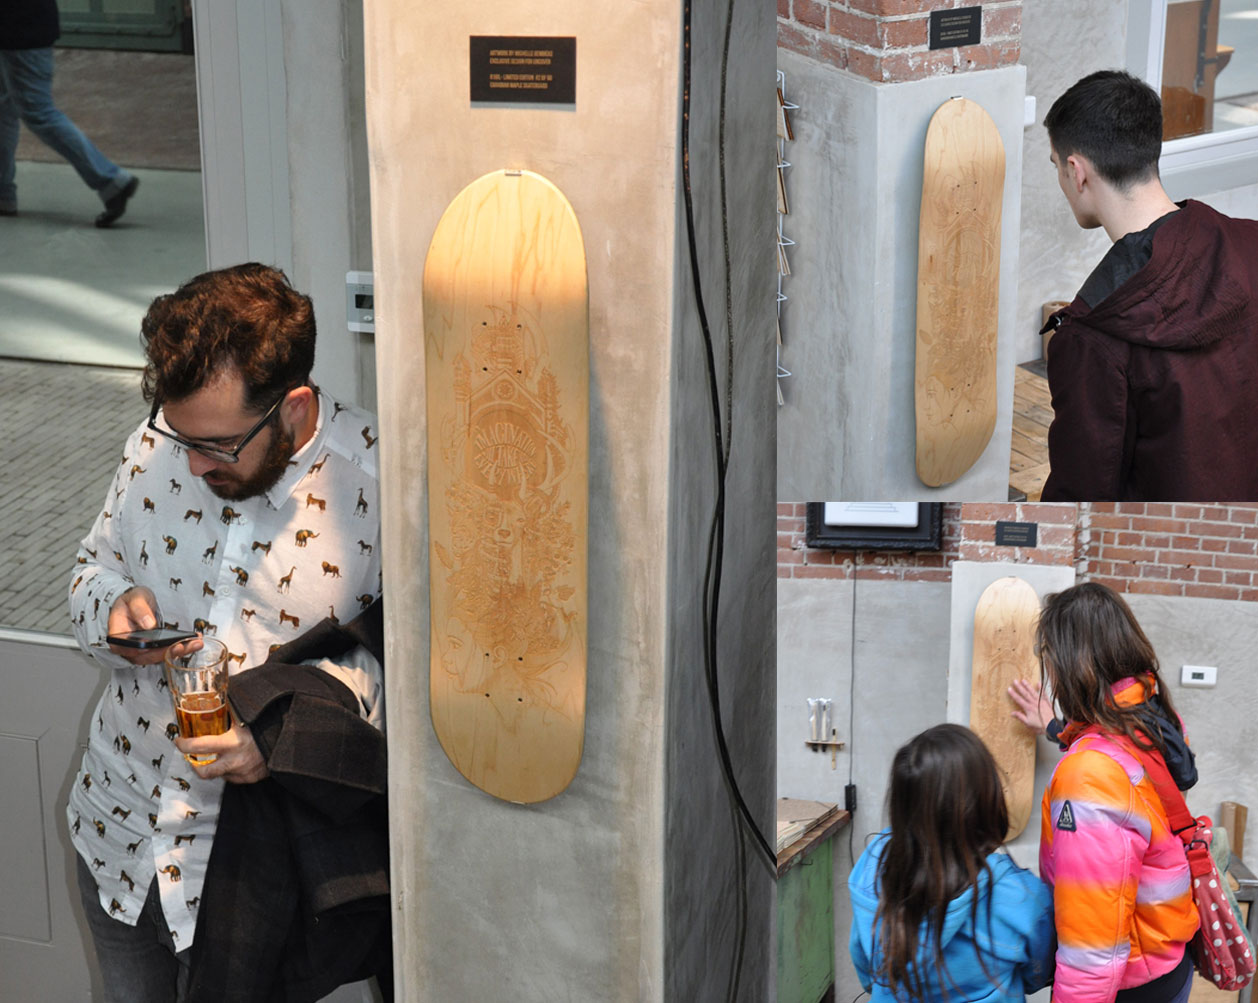 The skateboard displayed at Uncover Lab